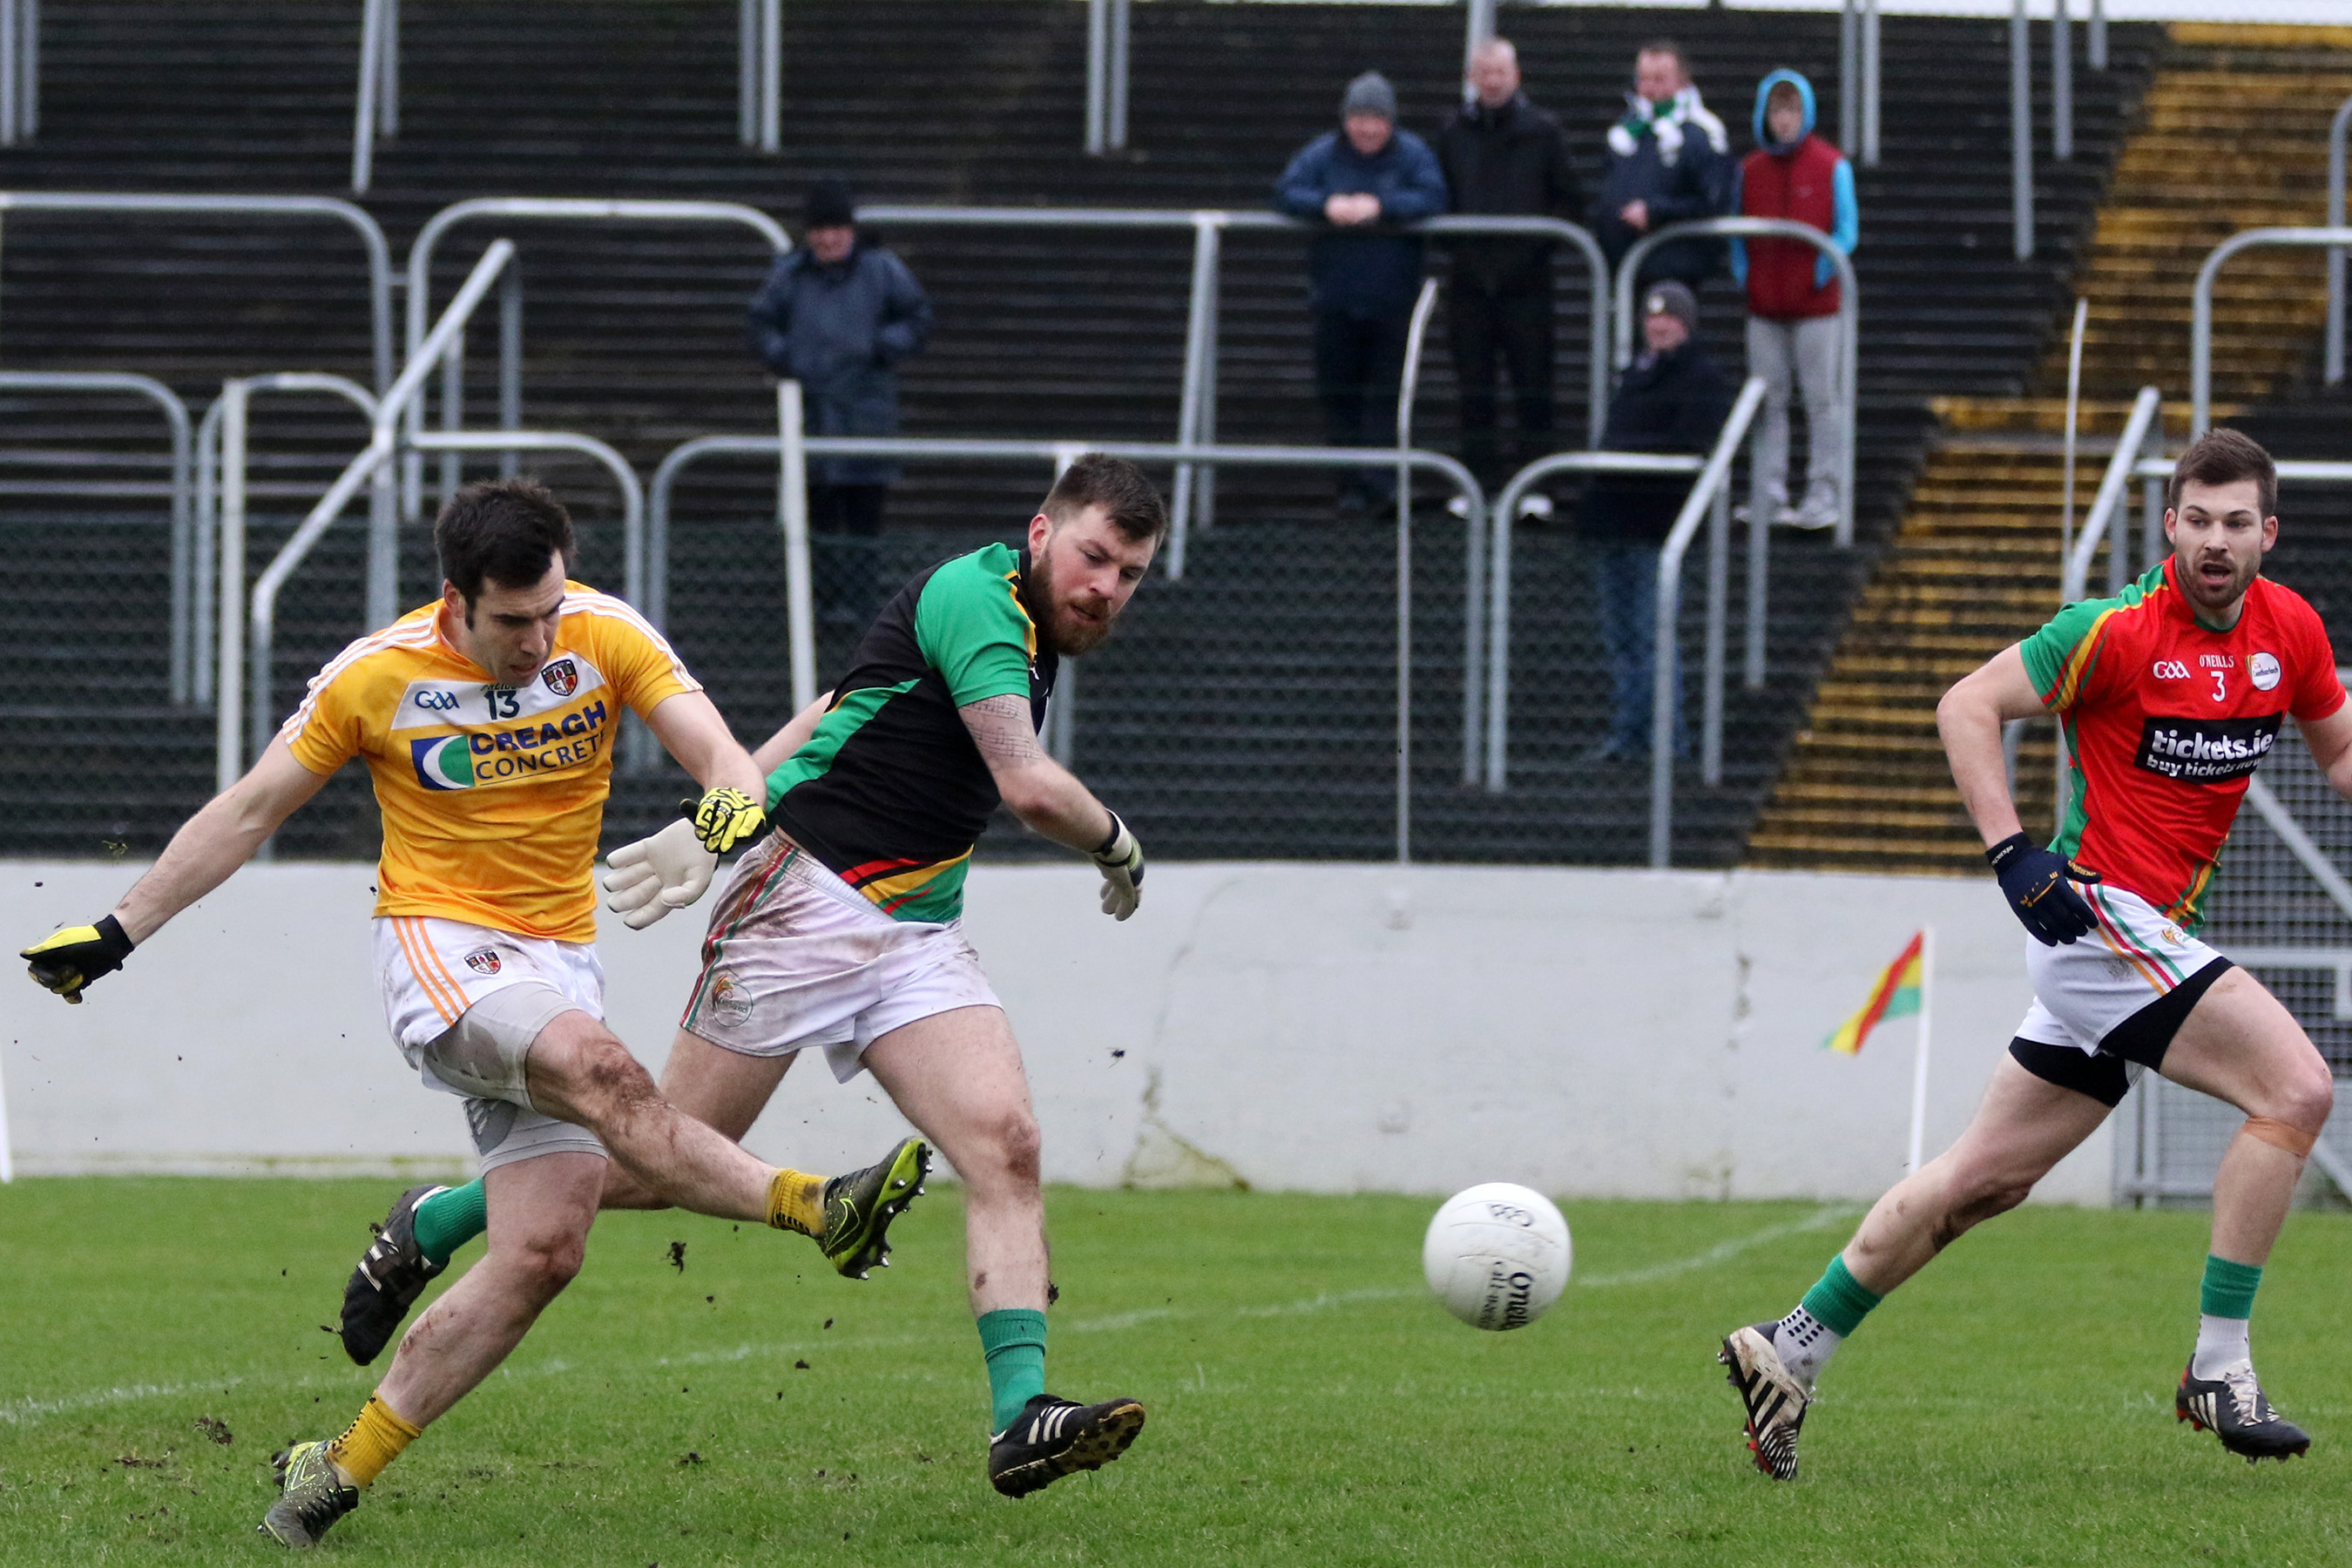 Kevin niblock bagged the games only goal as antrim beat carlow 1 12 to 0 10 in their nfl division four opener yesterday